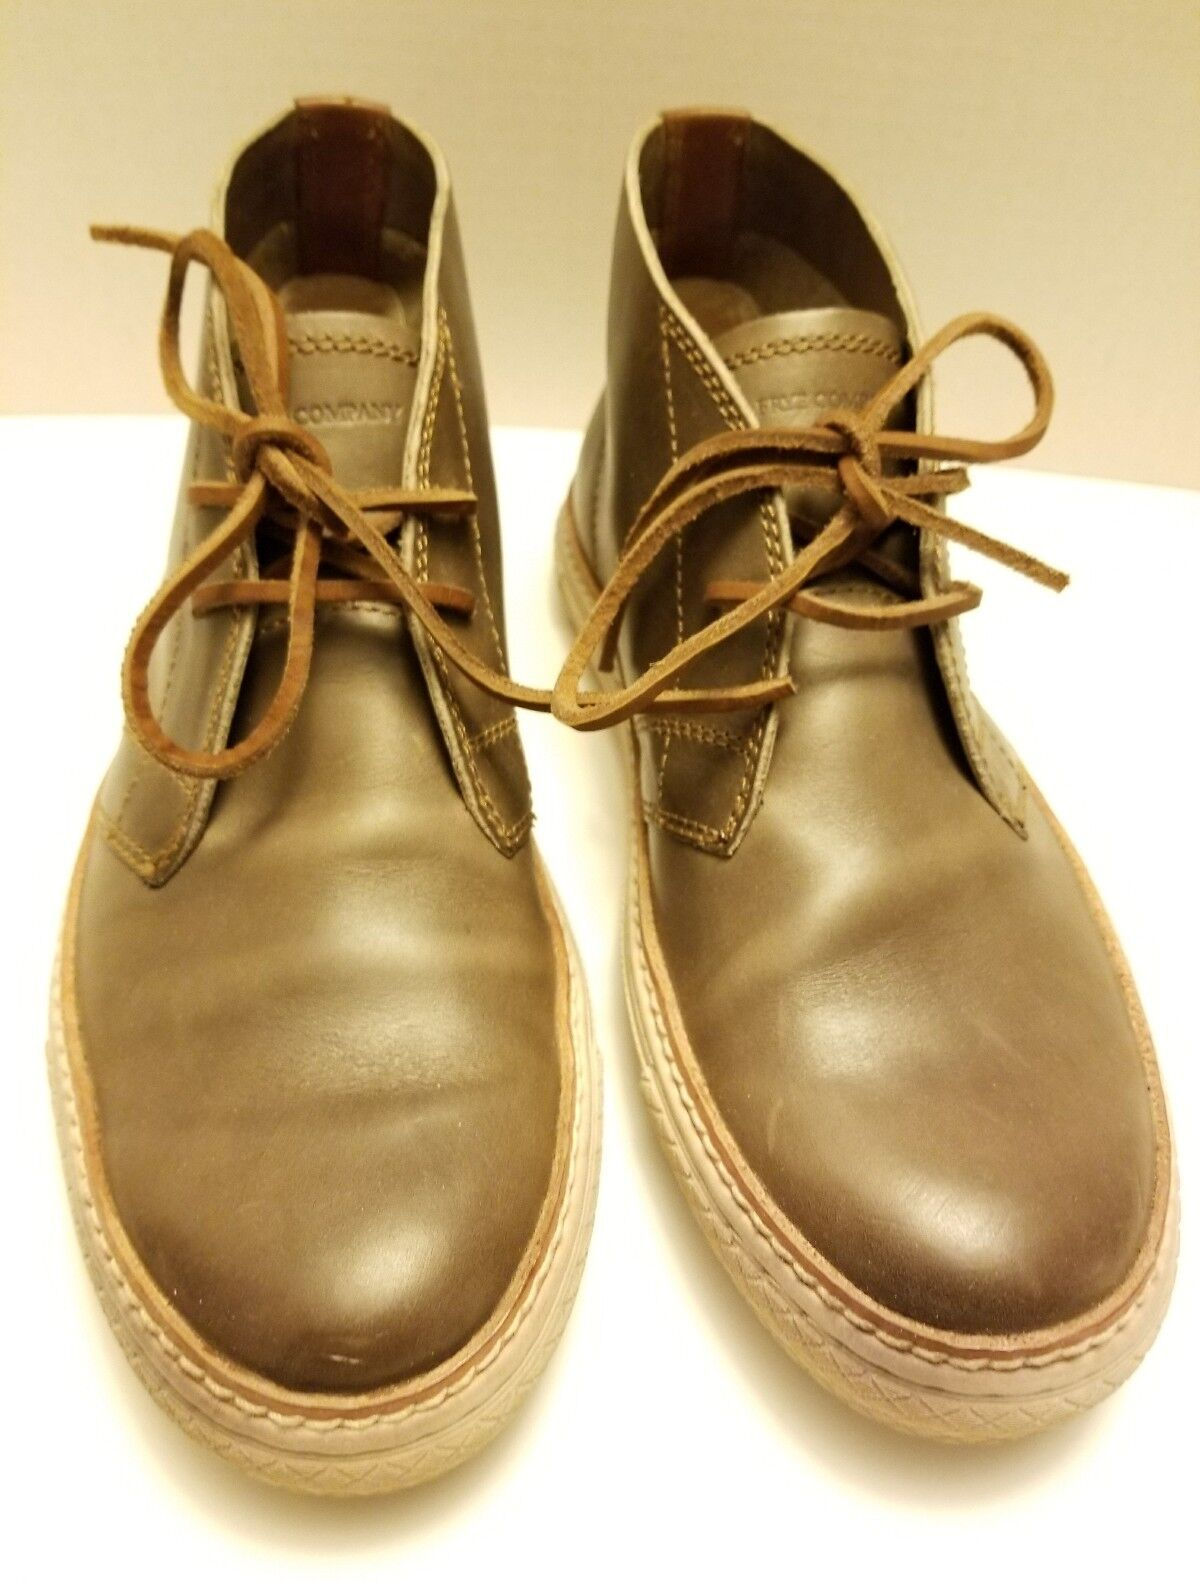 Frye Men's size 8.5 Gates Chukka Boots  Sneakers shoes Leather Stone